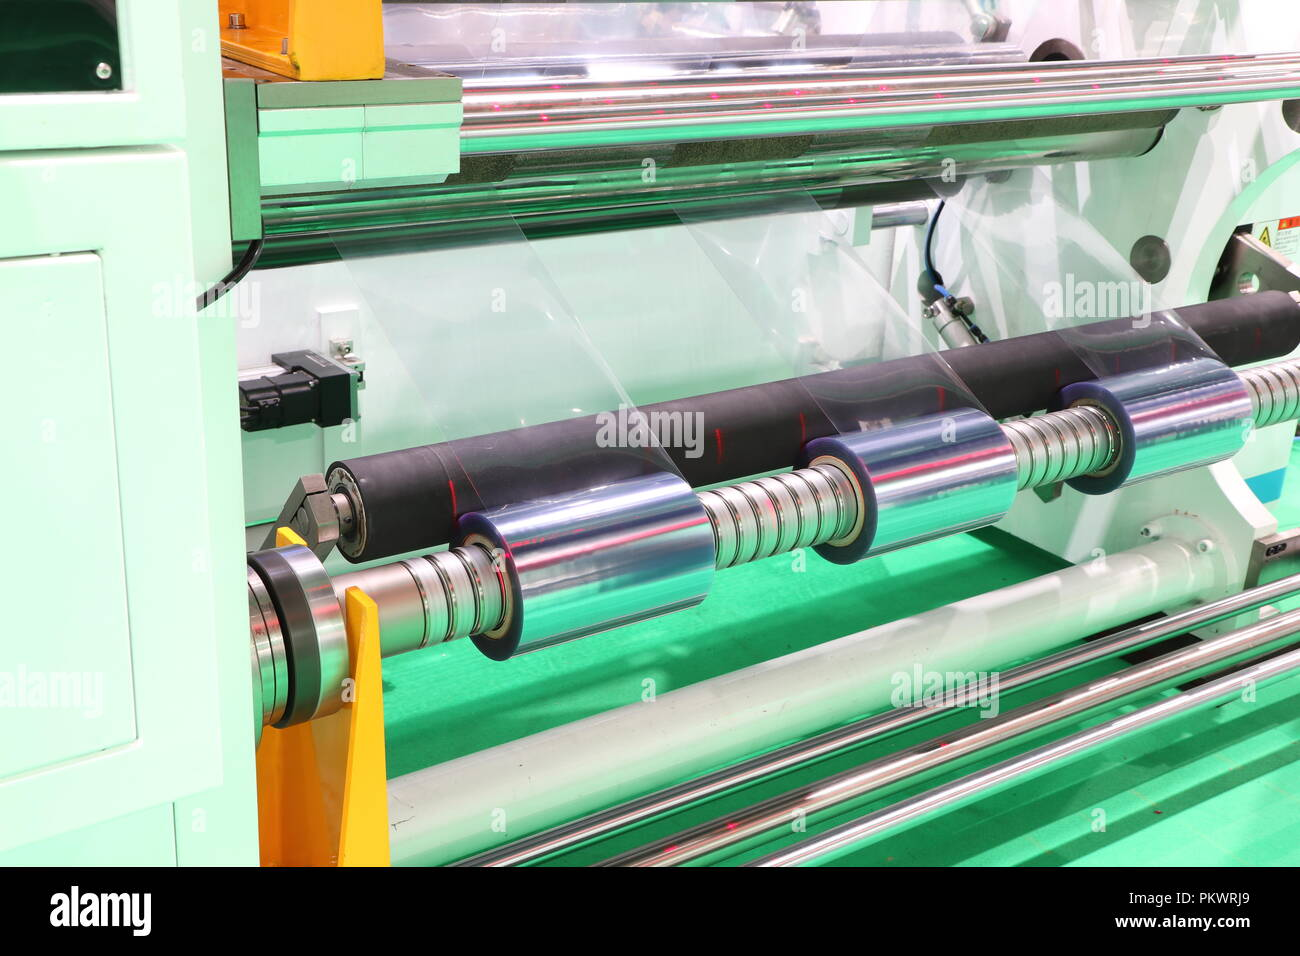 Film Roll slitting machine ; a shearing operation that cuts a large roll of material into narrower rolls Stock Photo